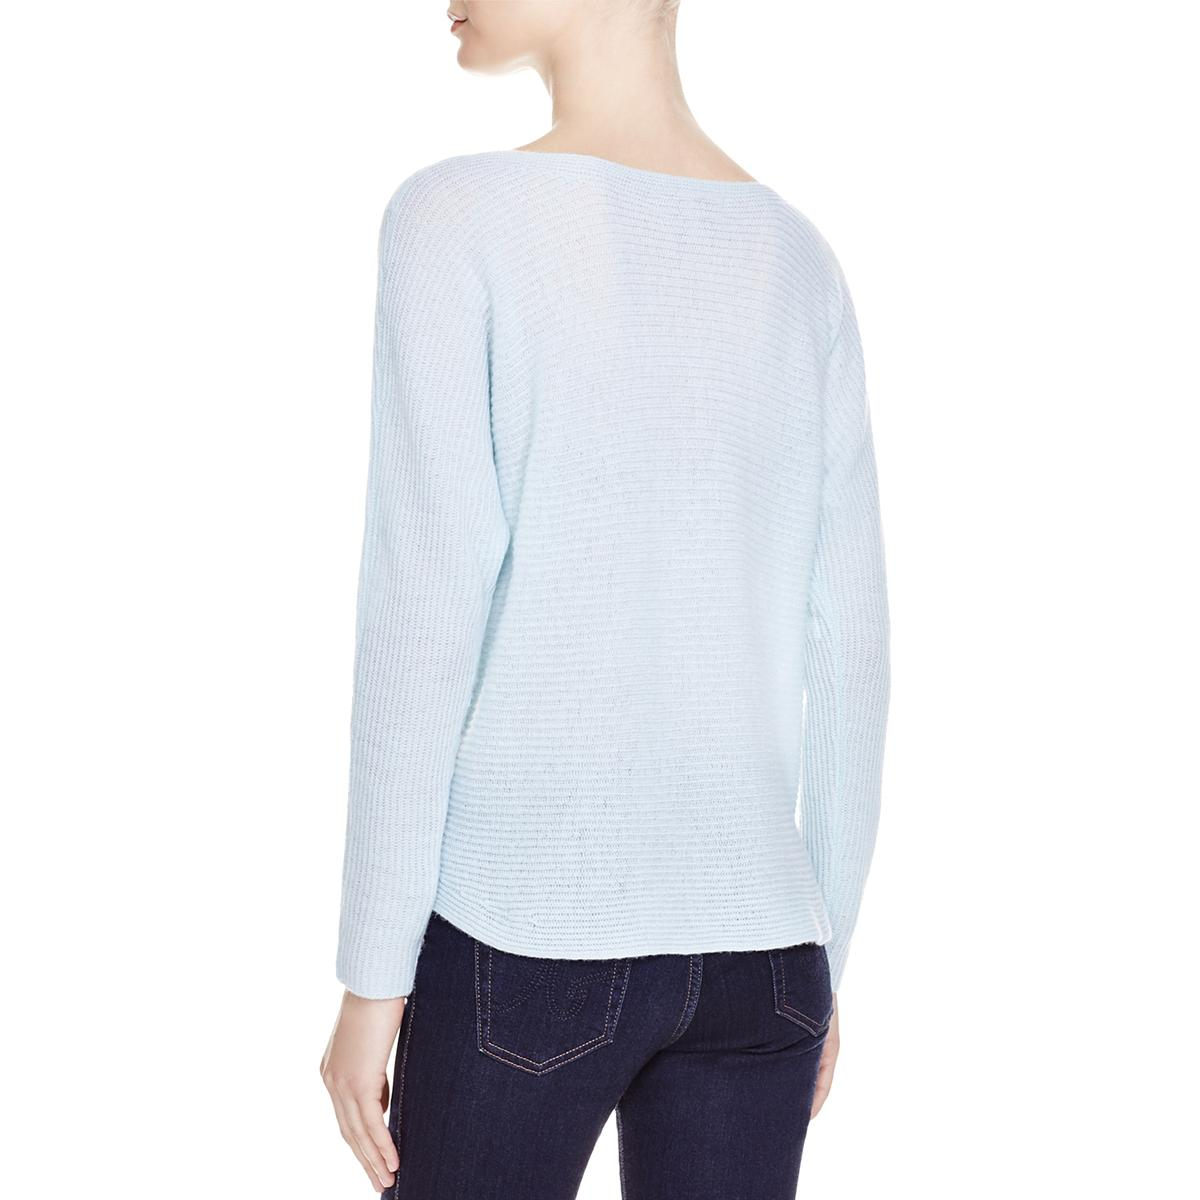 Joie-Womens-Cashmere-Long-Sleeves-Scoop-Neck-Pullover-Sweater-Top-BHFO-3882 thumbnail 5